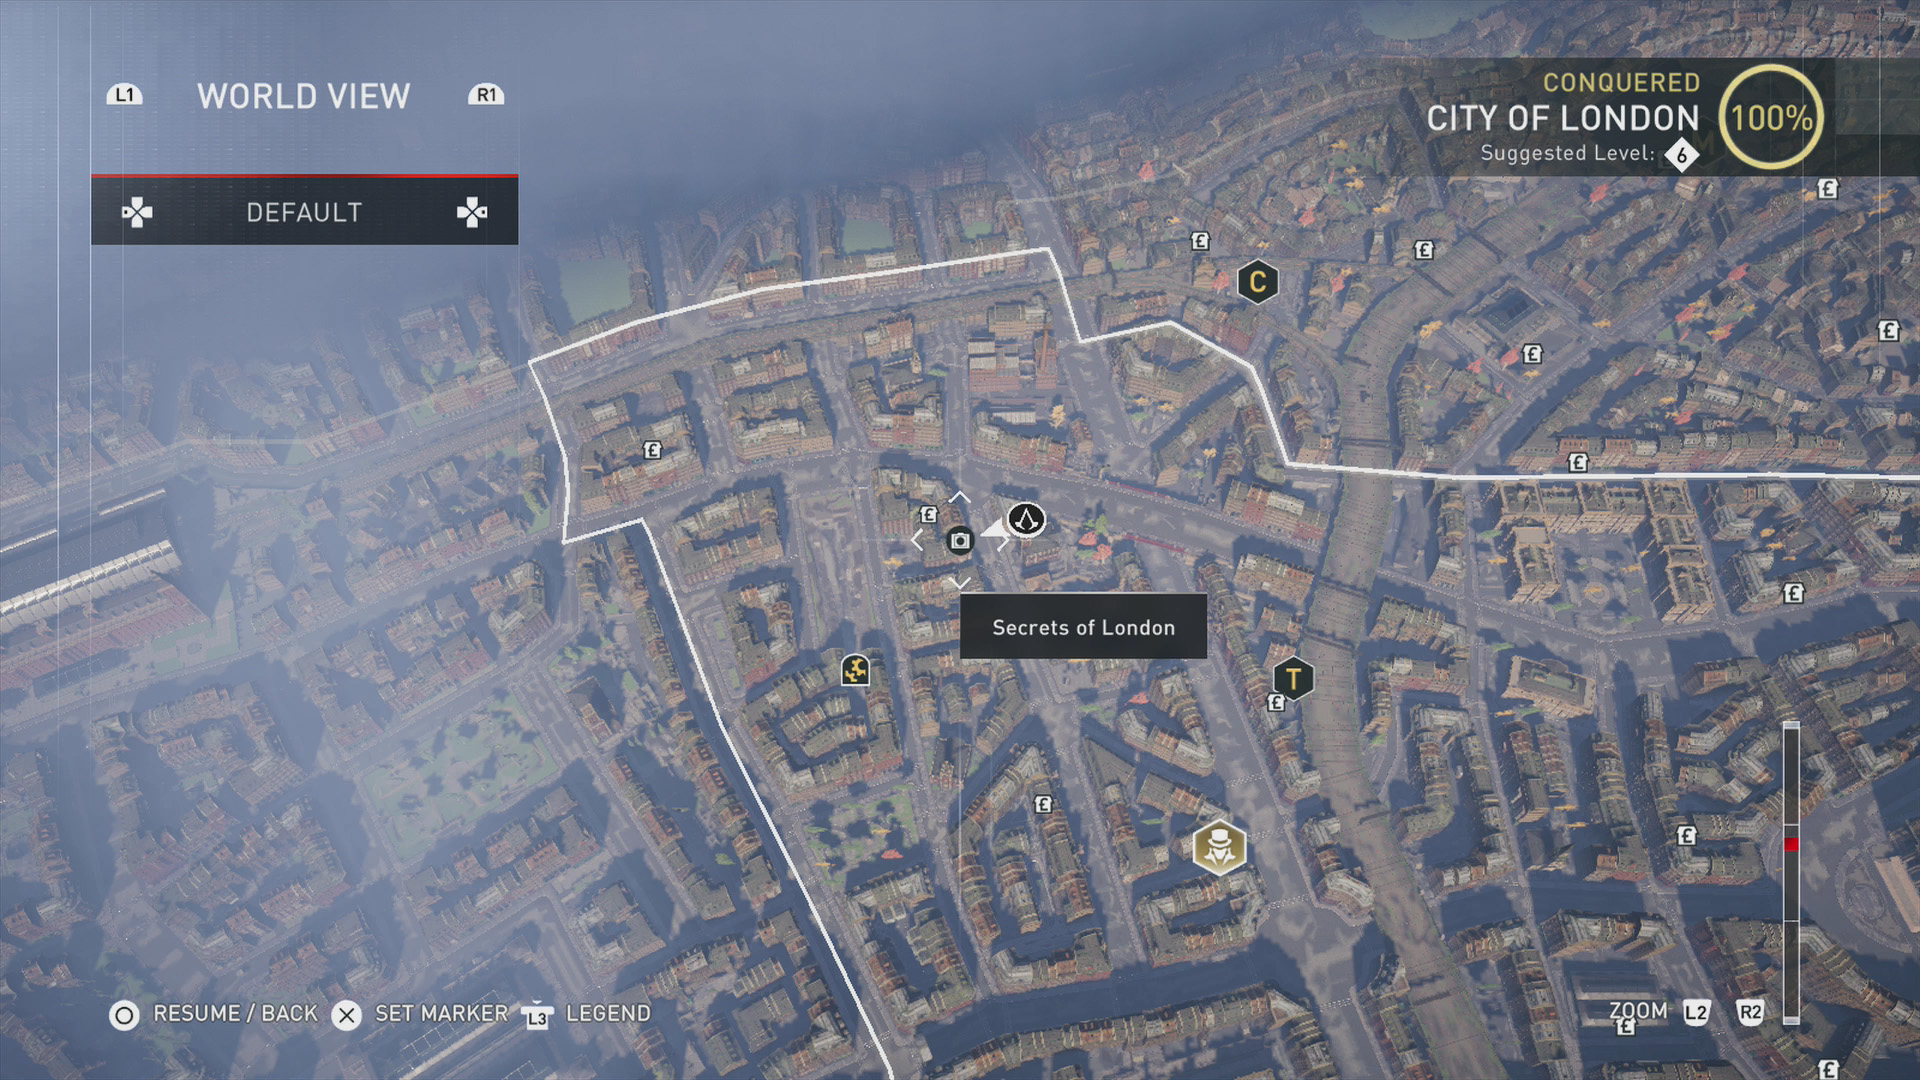 secrets of london city of london map Assassin S Creed Syndicate All Secrets Of London Locations Aegis Outfit Usgamer